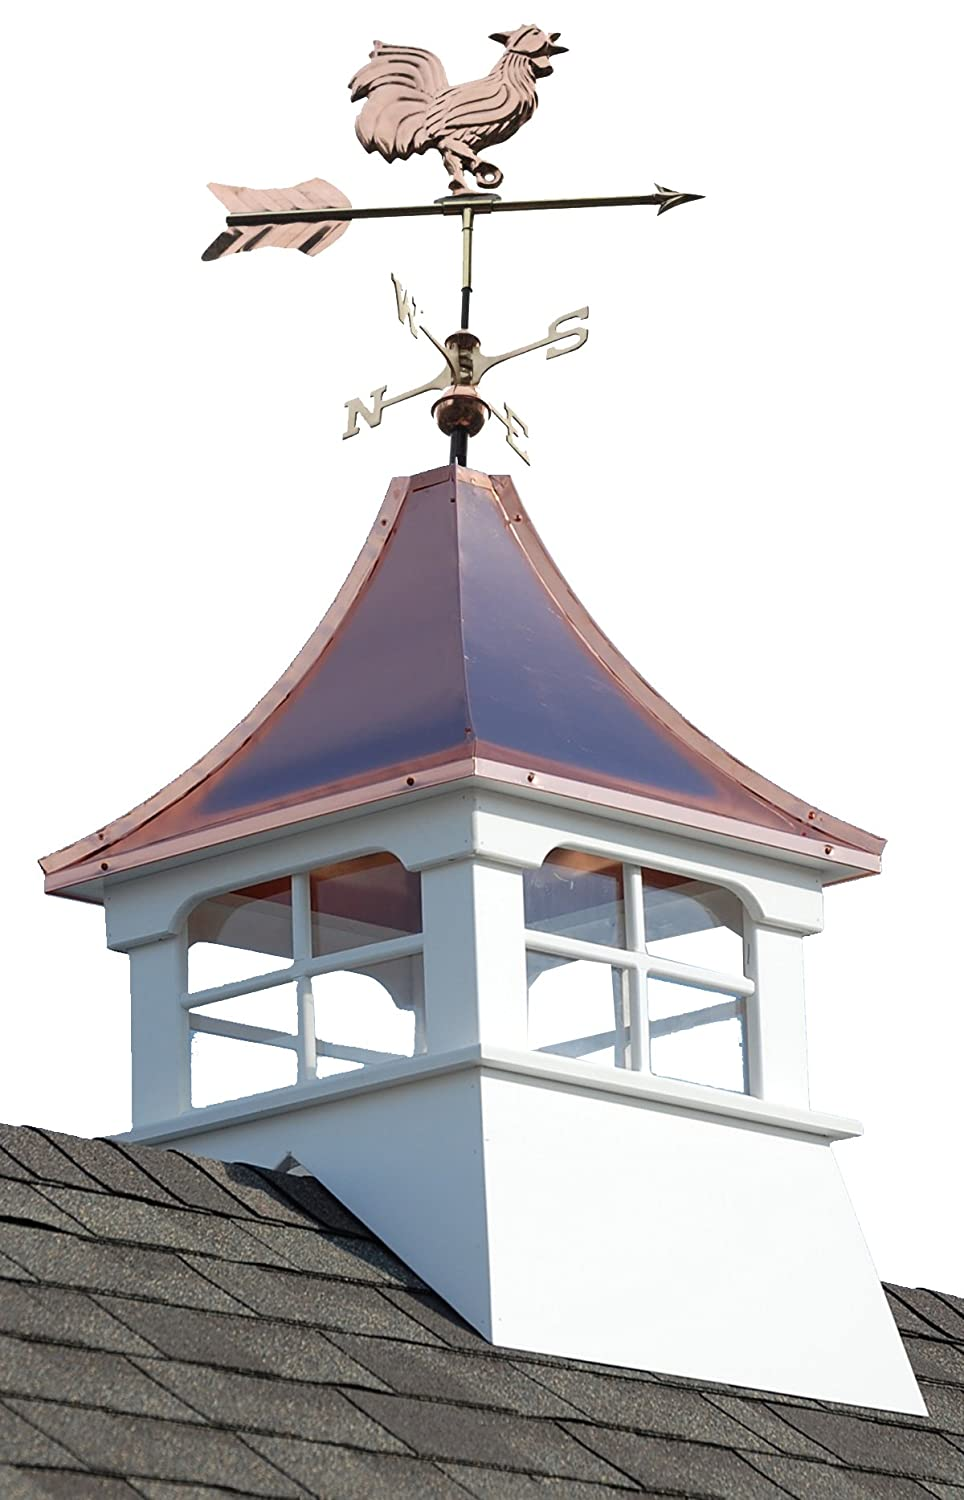 Accentua Charleston Cupola with Rooster 24 Squa OFFicial site Boston Mall Weathervane in.